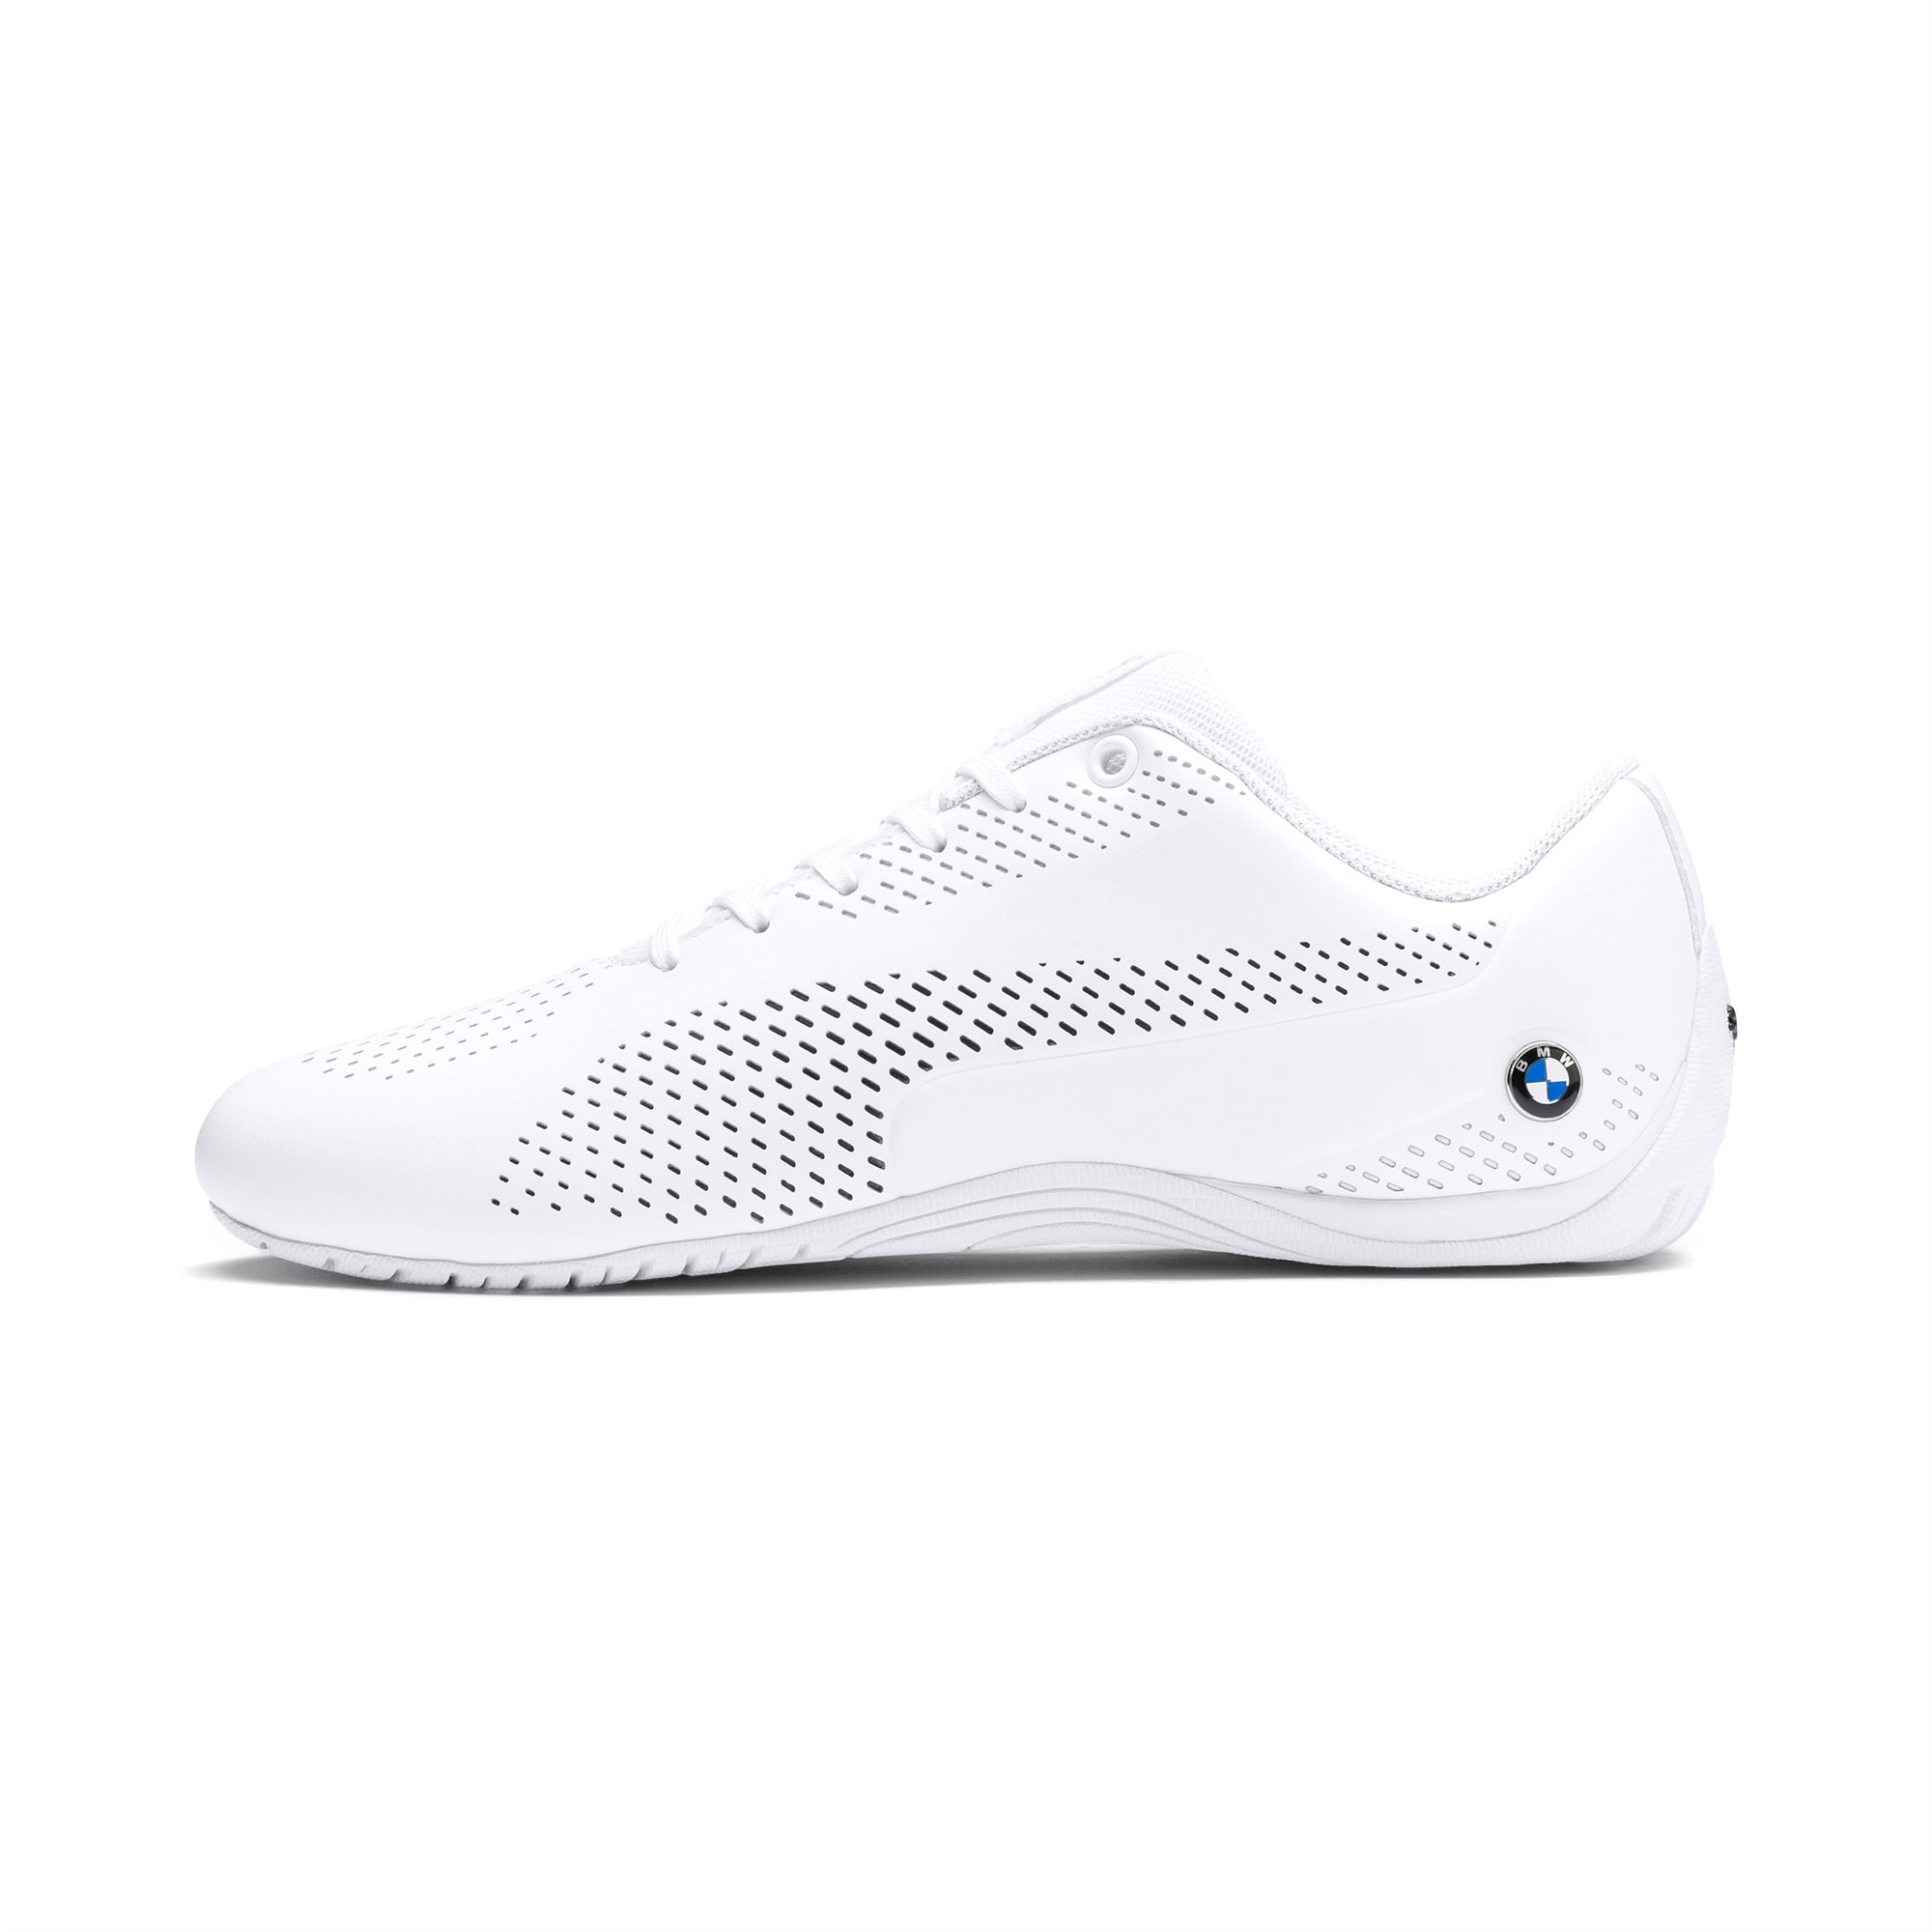 puma racing shoes uk